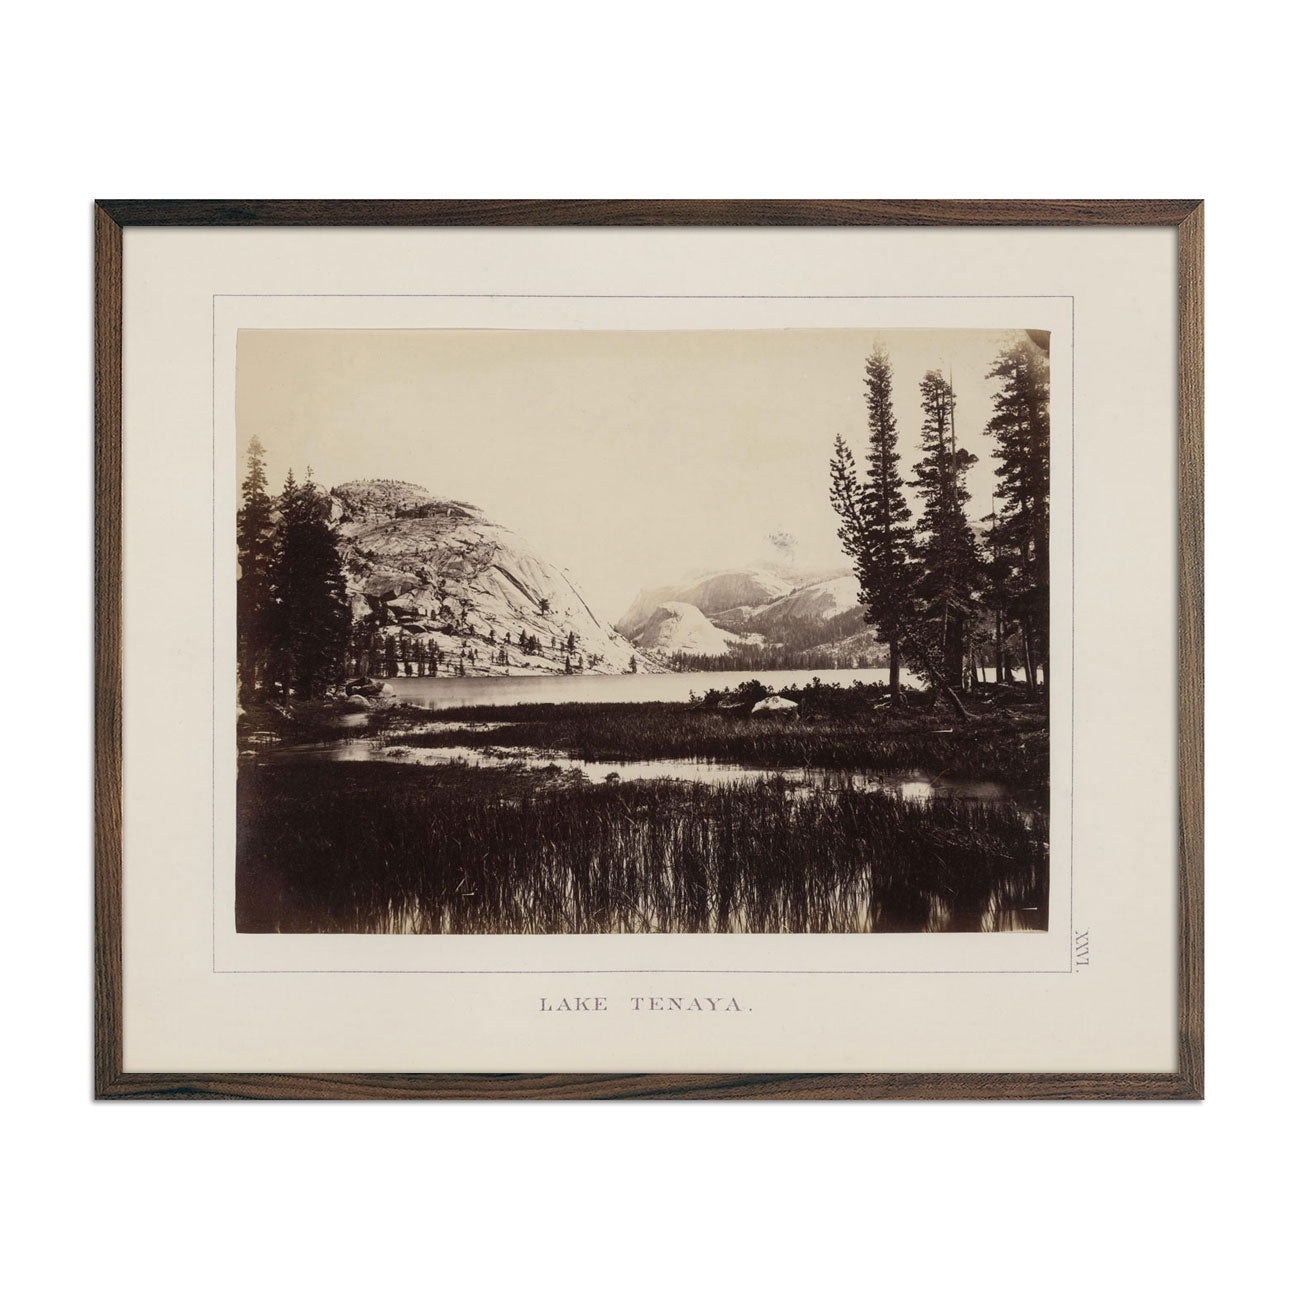 Photograph of Lake Tenaya